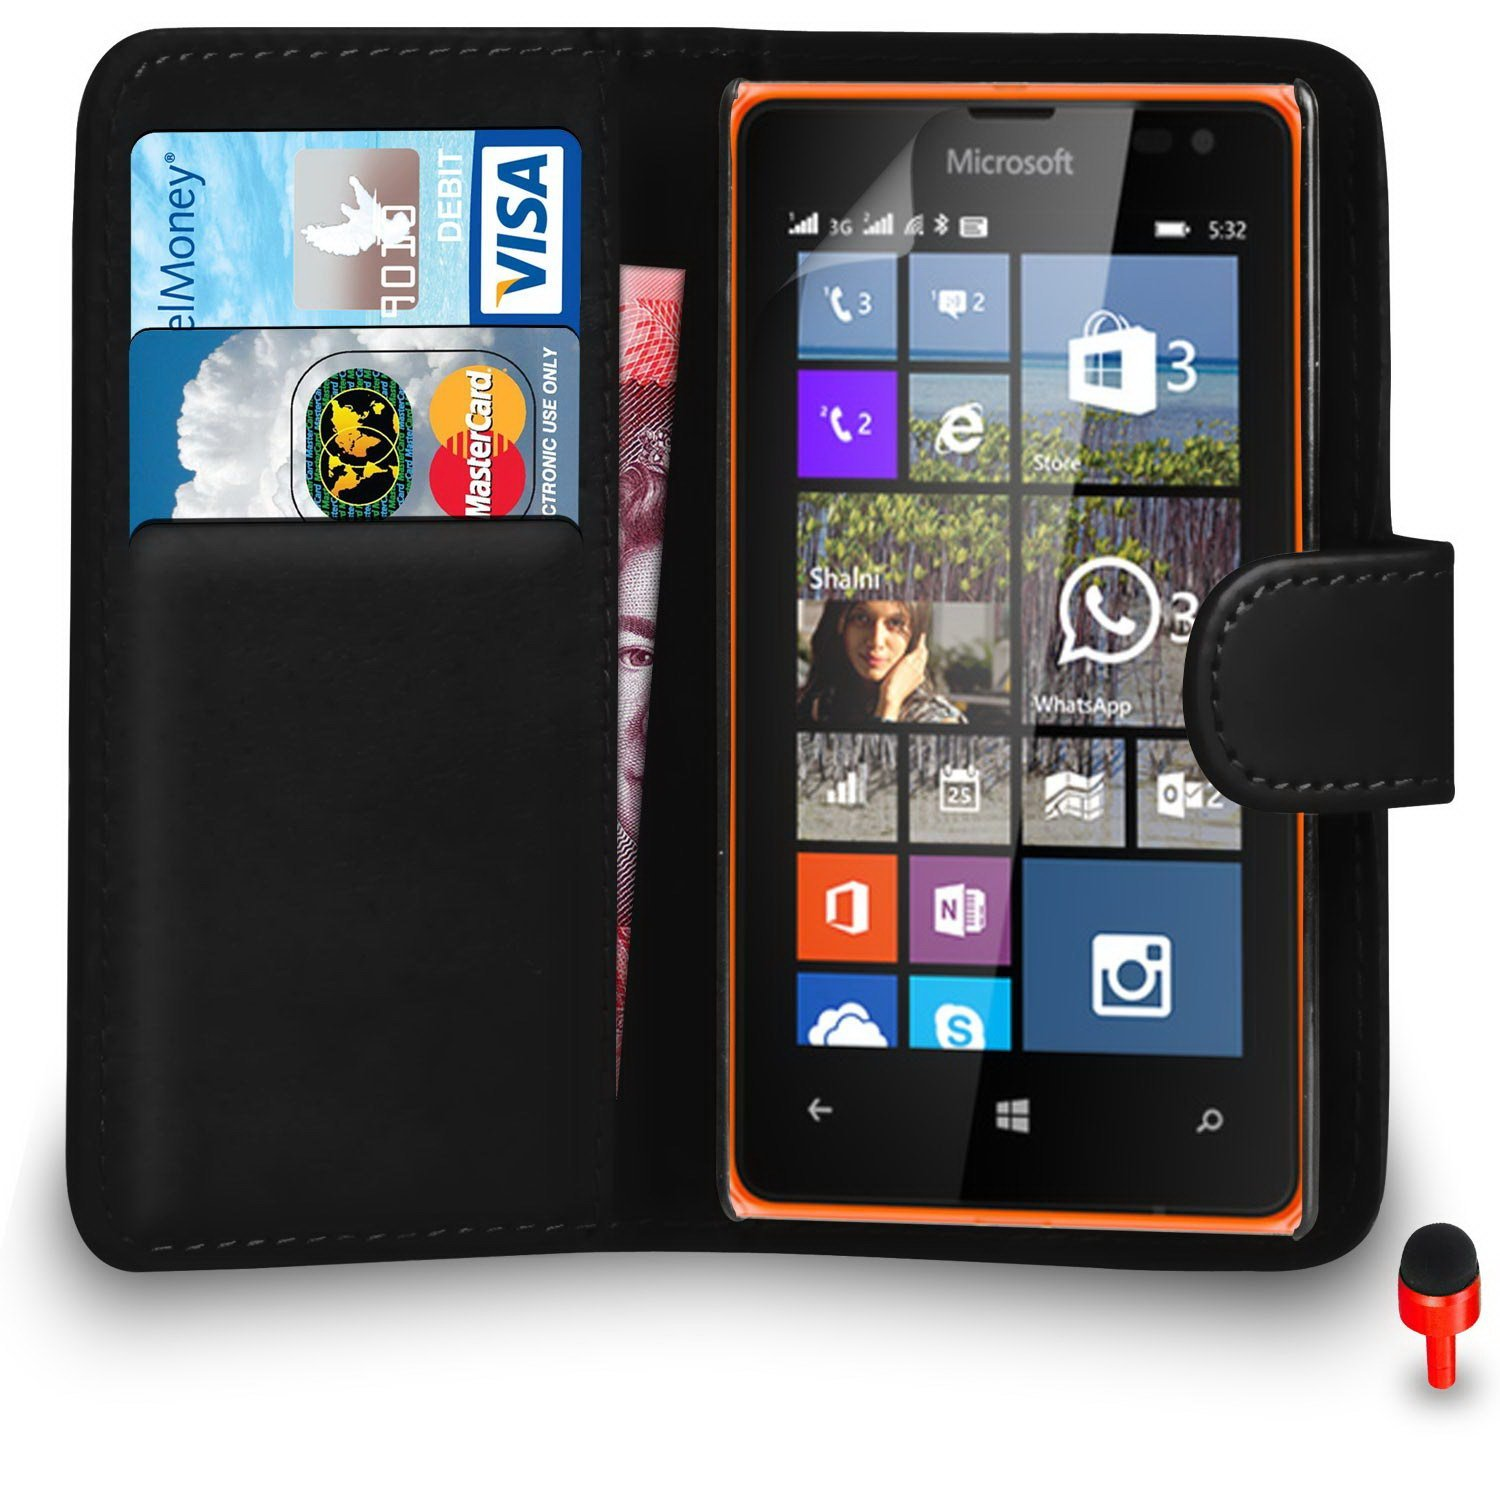 Microsoft Lumia 532 Premium Leather Black Wallet Flip Case Cover PouchRED DS+ Screen Protector & Polishing Cloth SVL0 BY SHUKAN®, (WALLET BLACK)